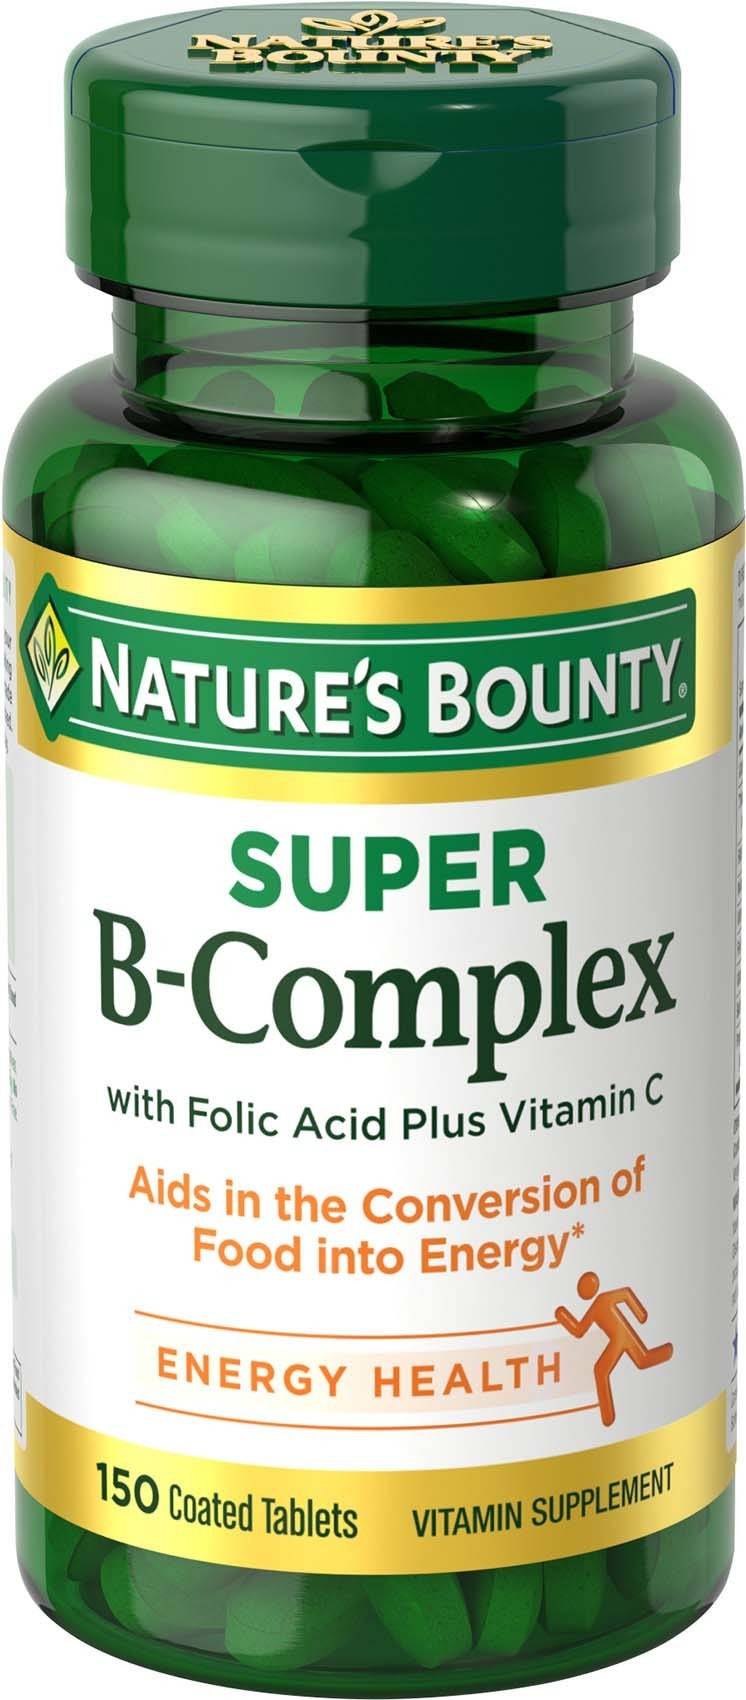 NATURE'S BOUNTY SUPER B-COMPLEX 150 TAB